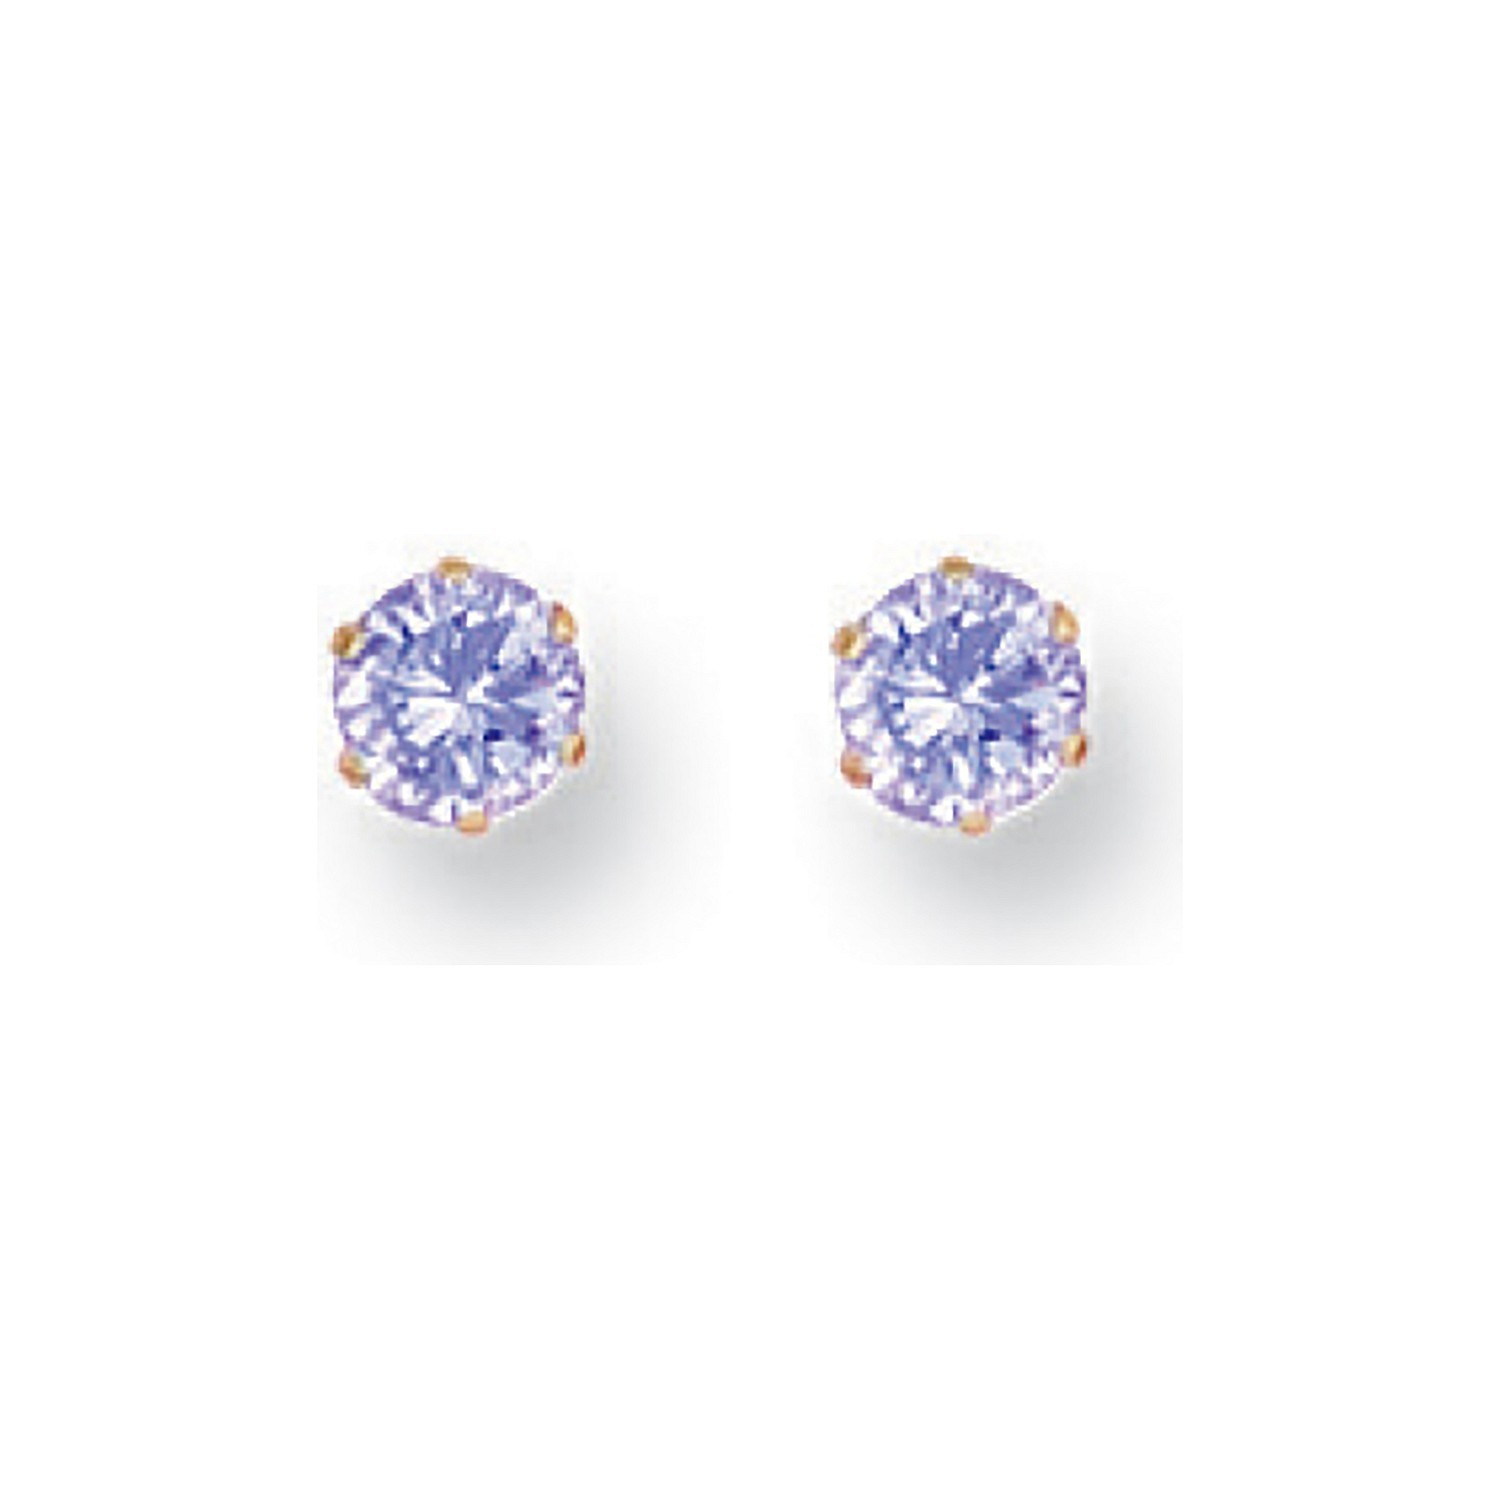 Y/G 4mm Claw Set Lavander Cz Studs